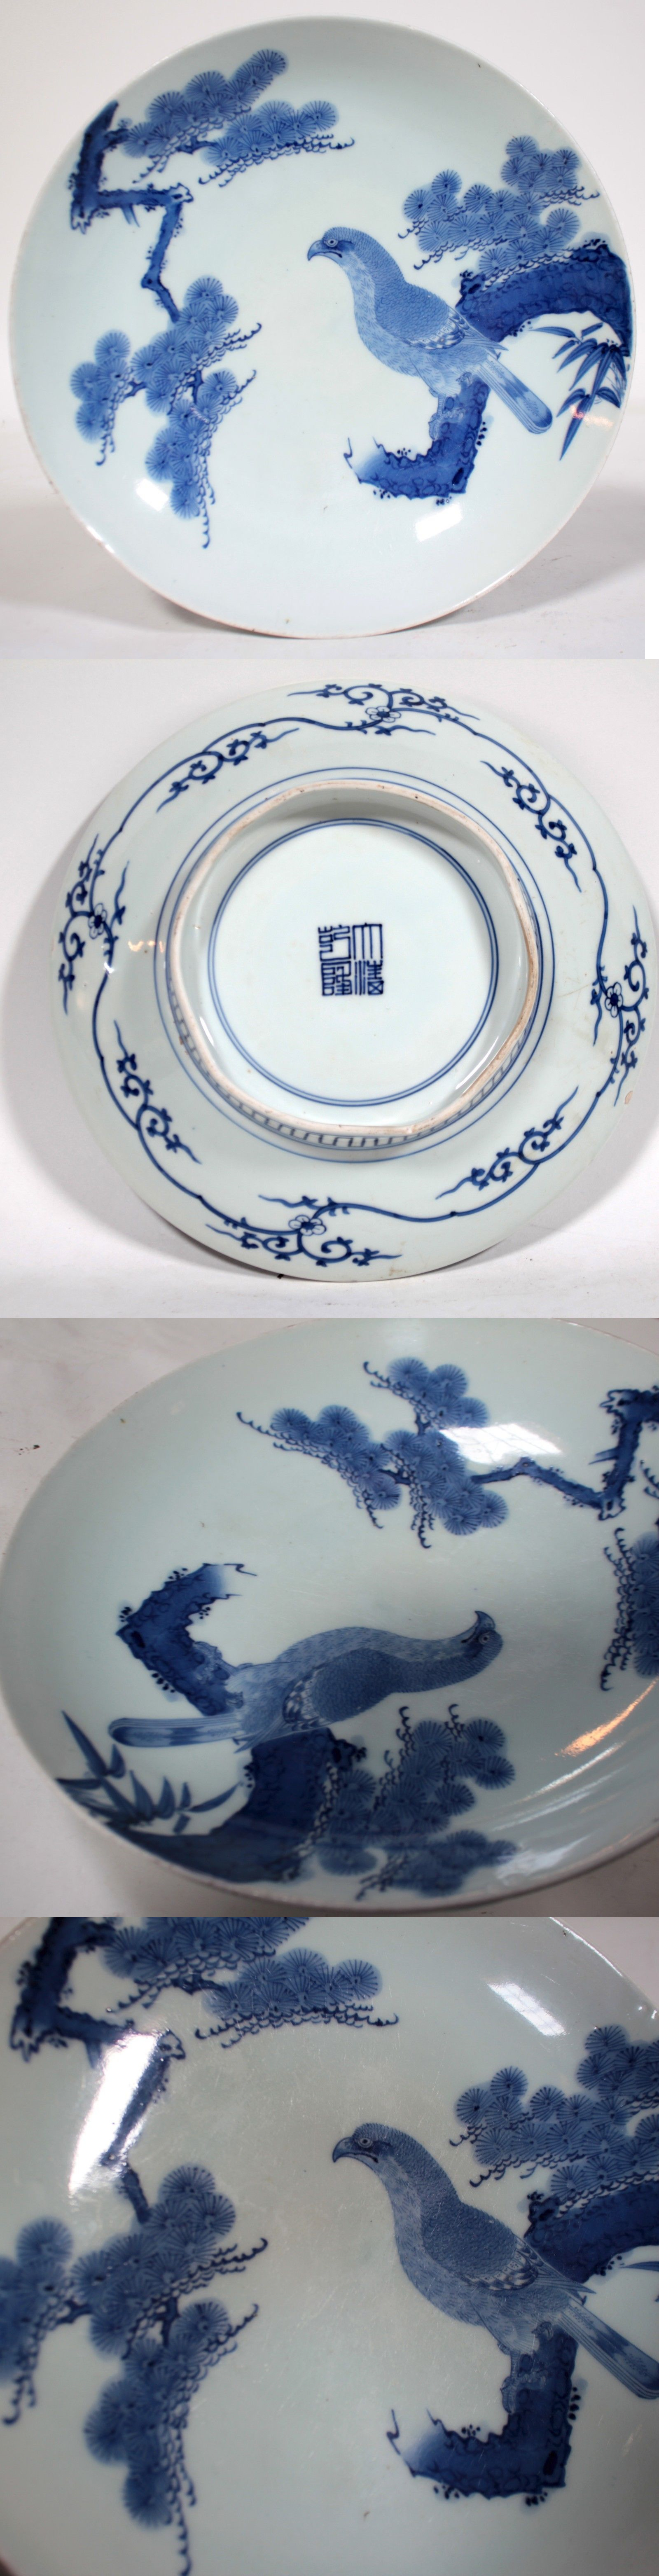 Antiques A Chinese Antique Blue And White Porcelain Plate Detailed Eagle Painting BUY IT NOW & Antiques: A Chinese Antique Blue And White Porcelain Plate Detailed ...